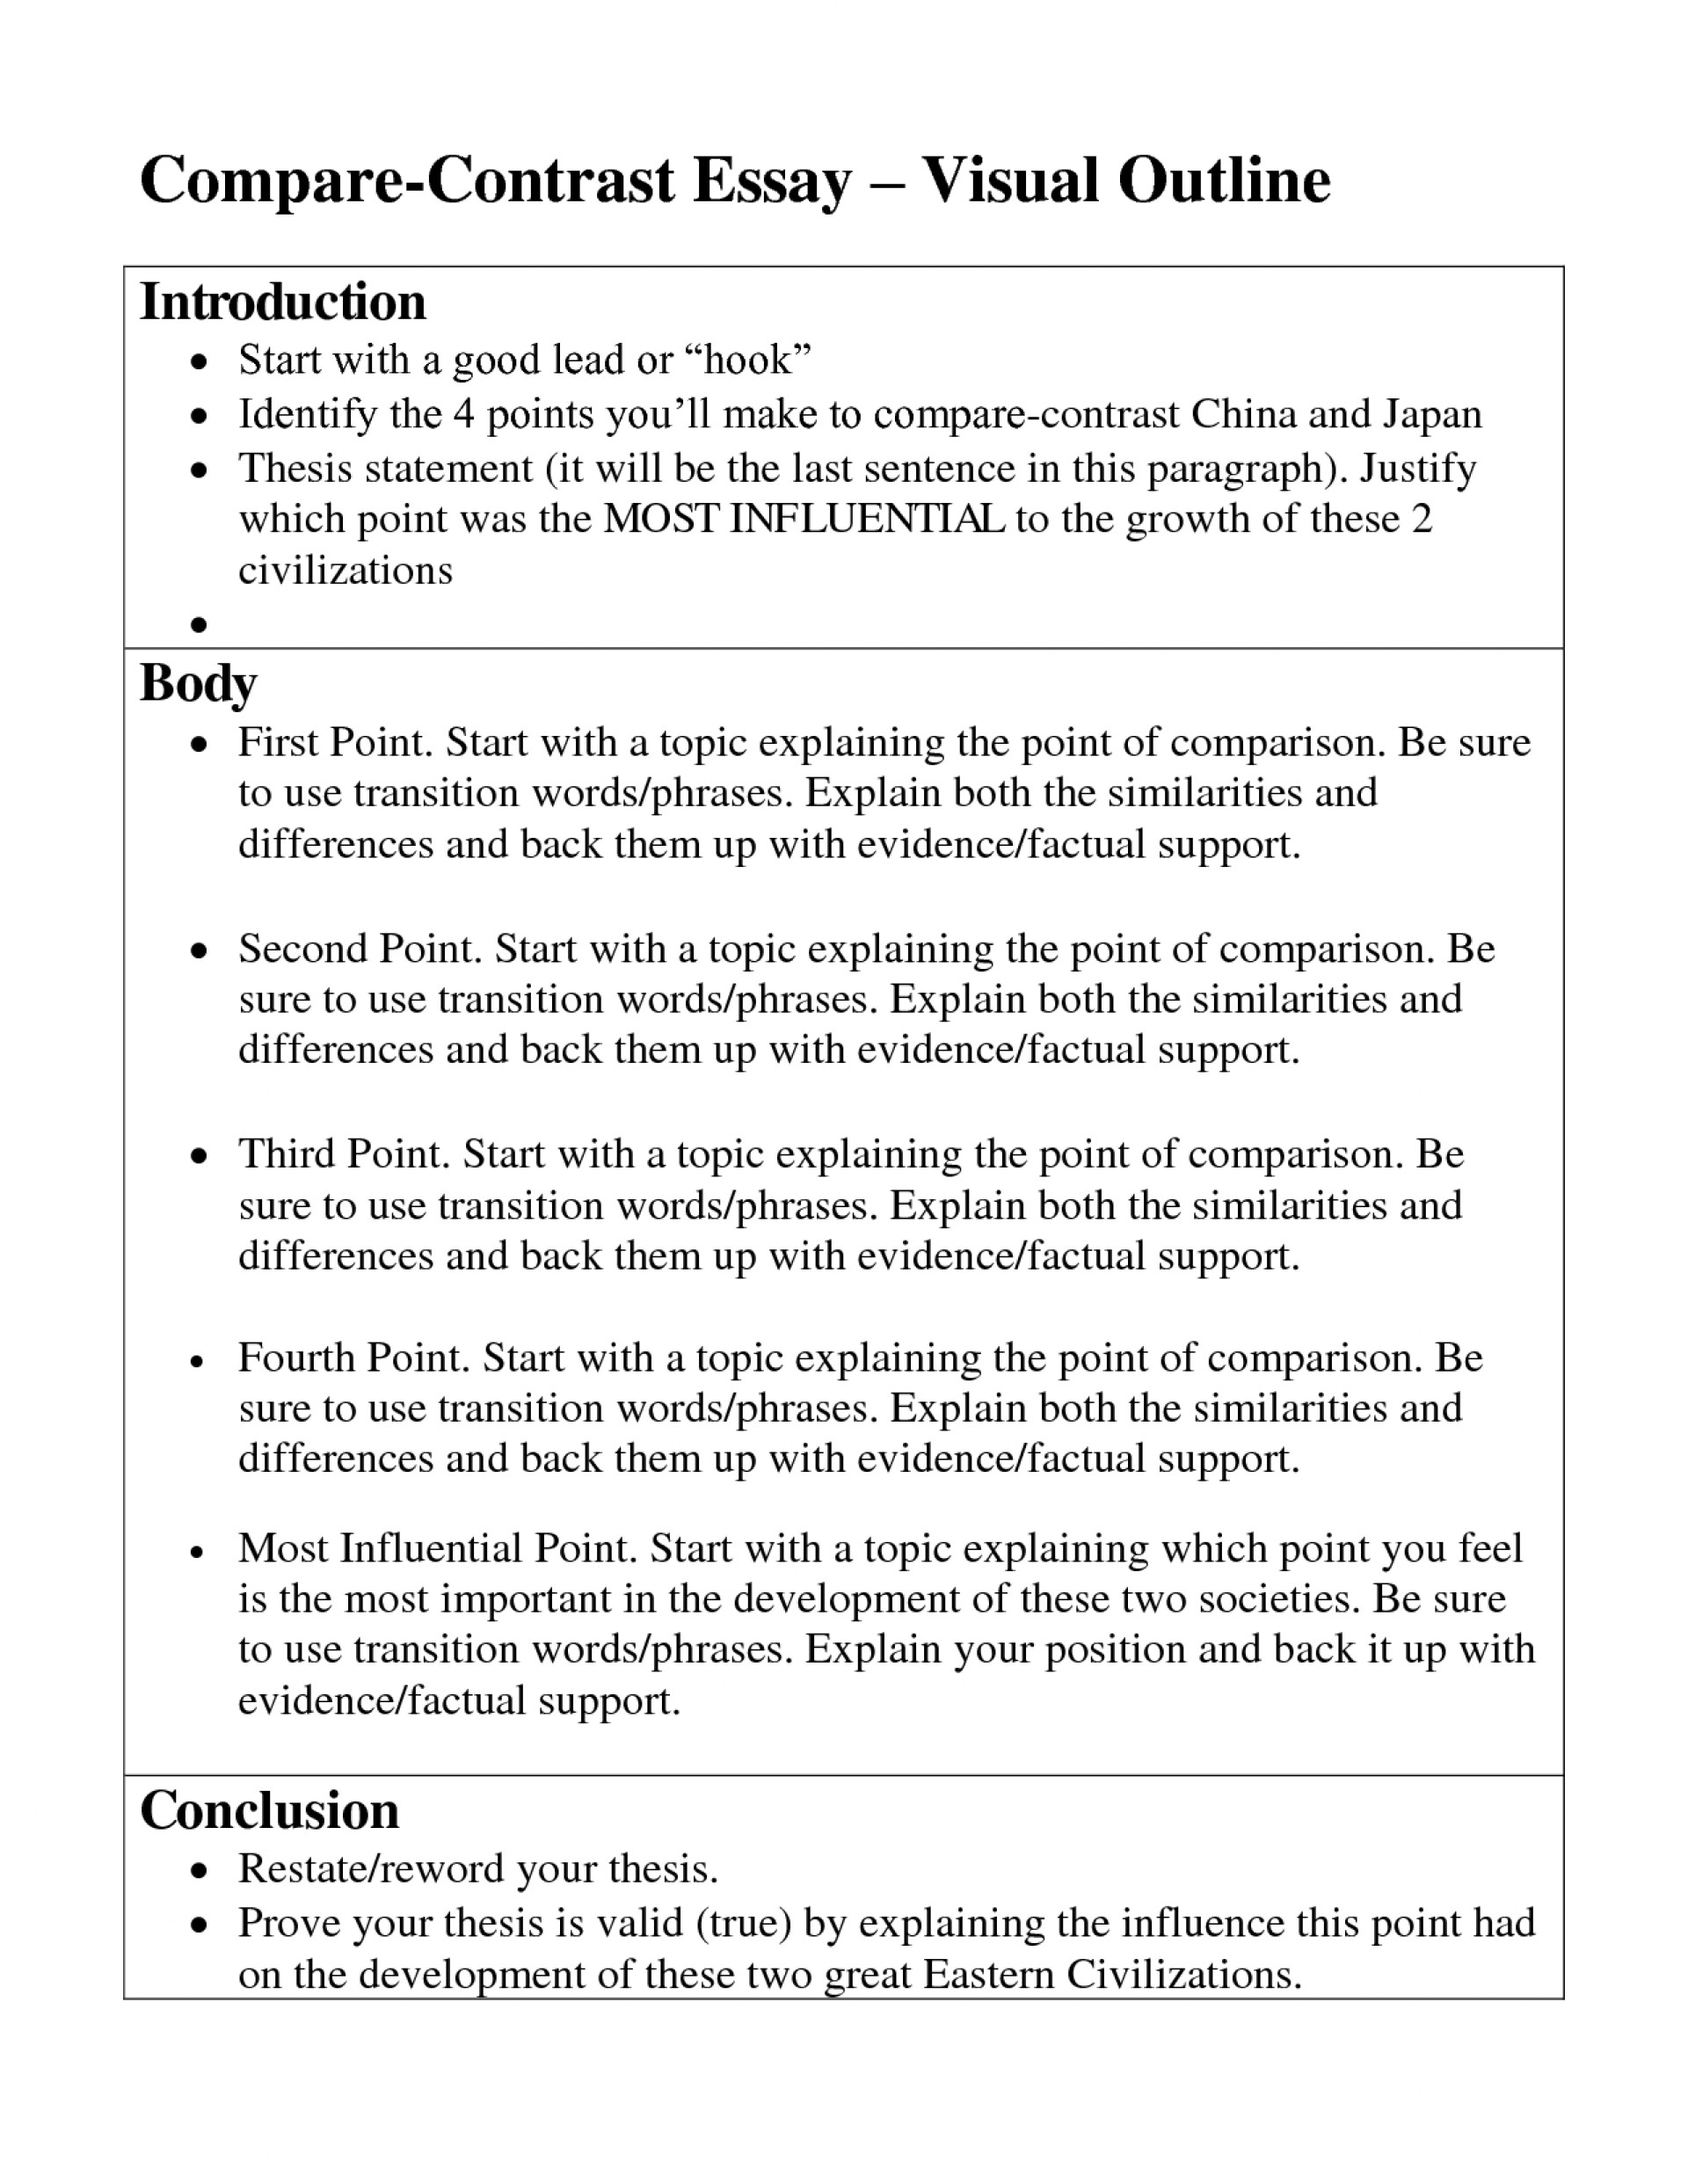 008 How To Write Researchs Best Research Papers A Paper - Pdf (2015) Conclusion An Introduction And 1920